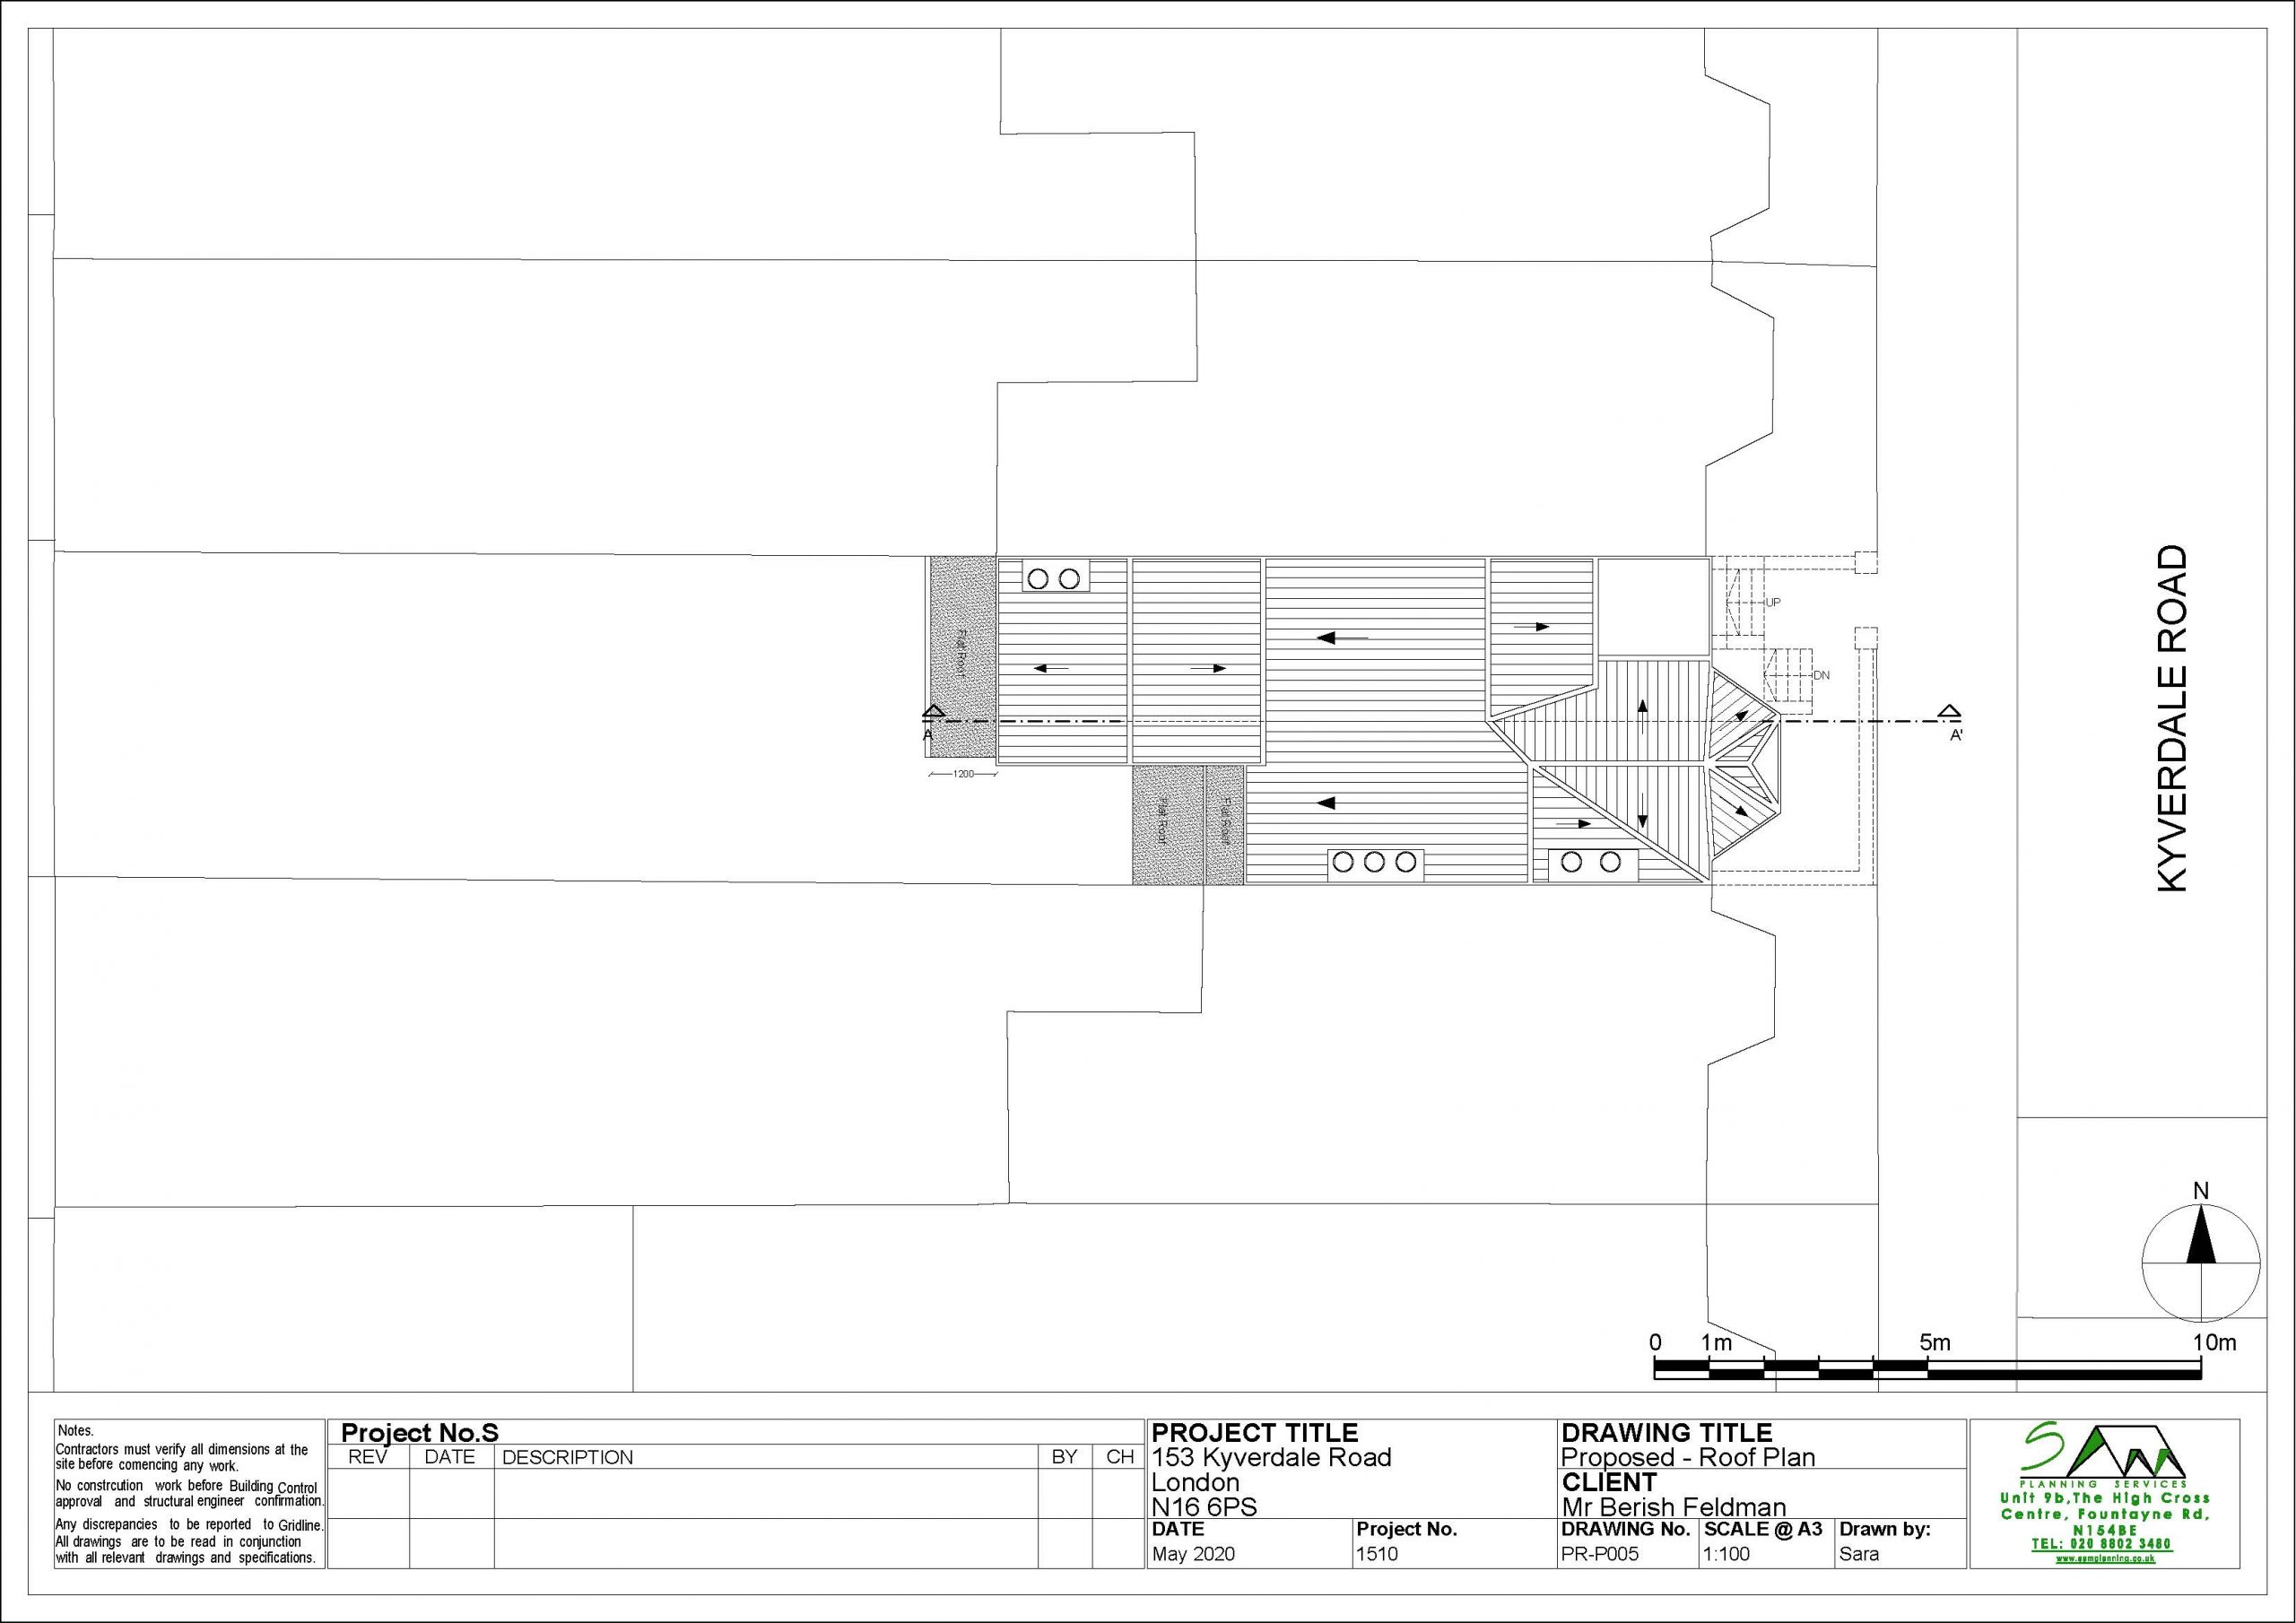 153kyverdaleProposed Roof Plan